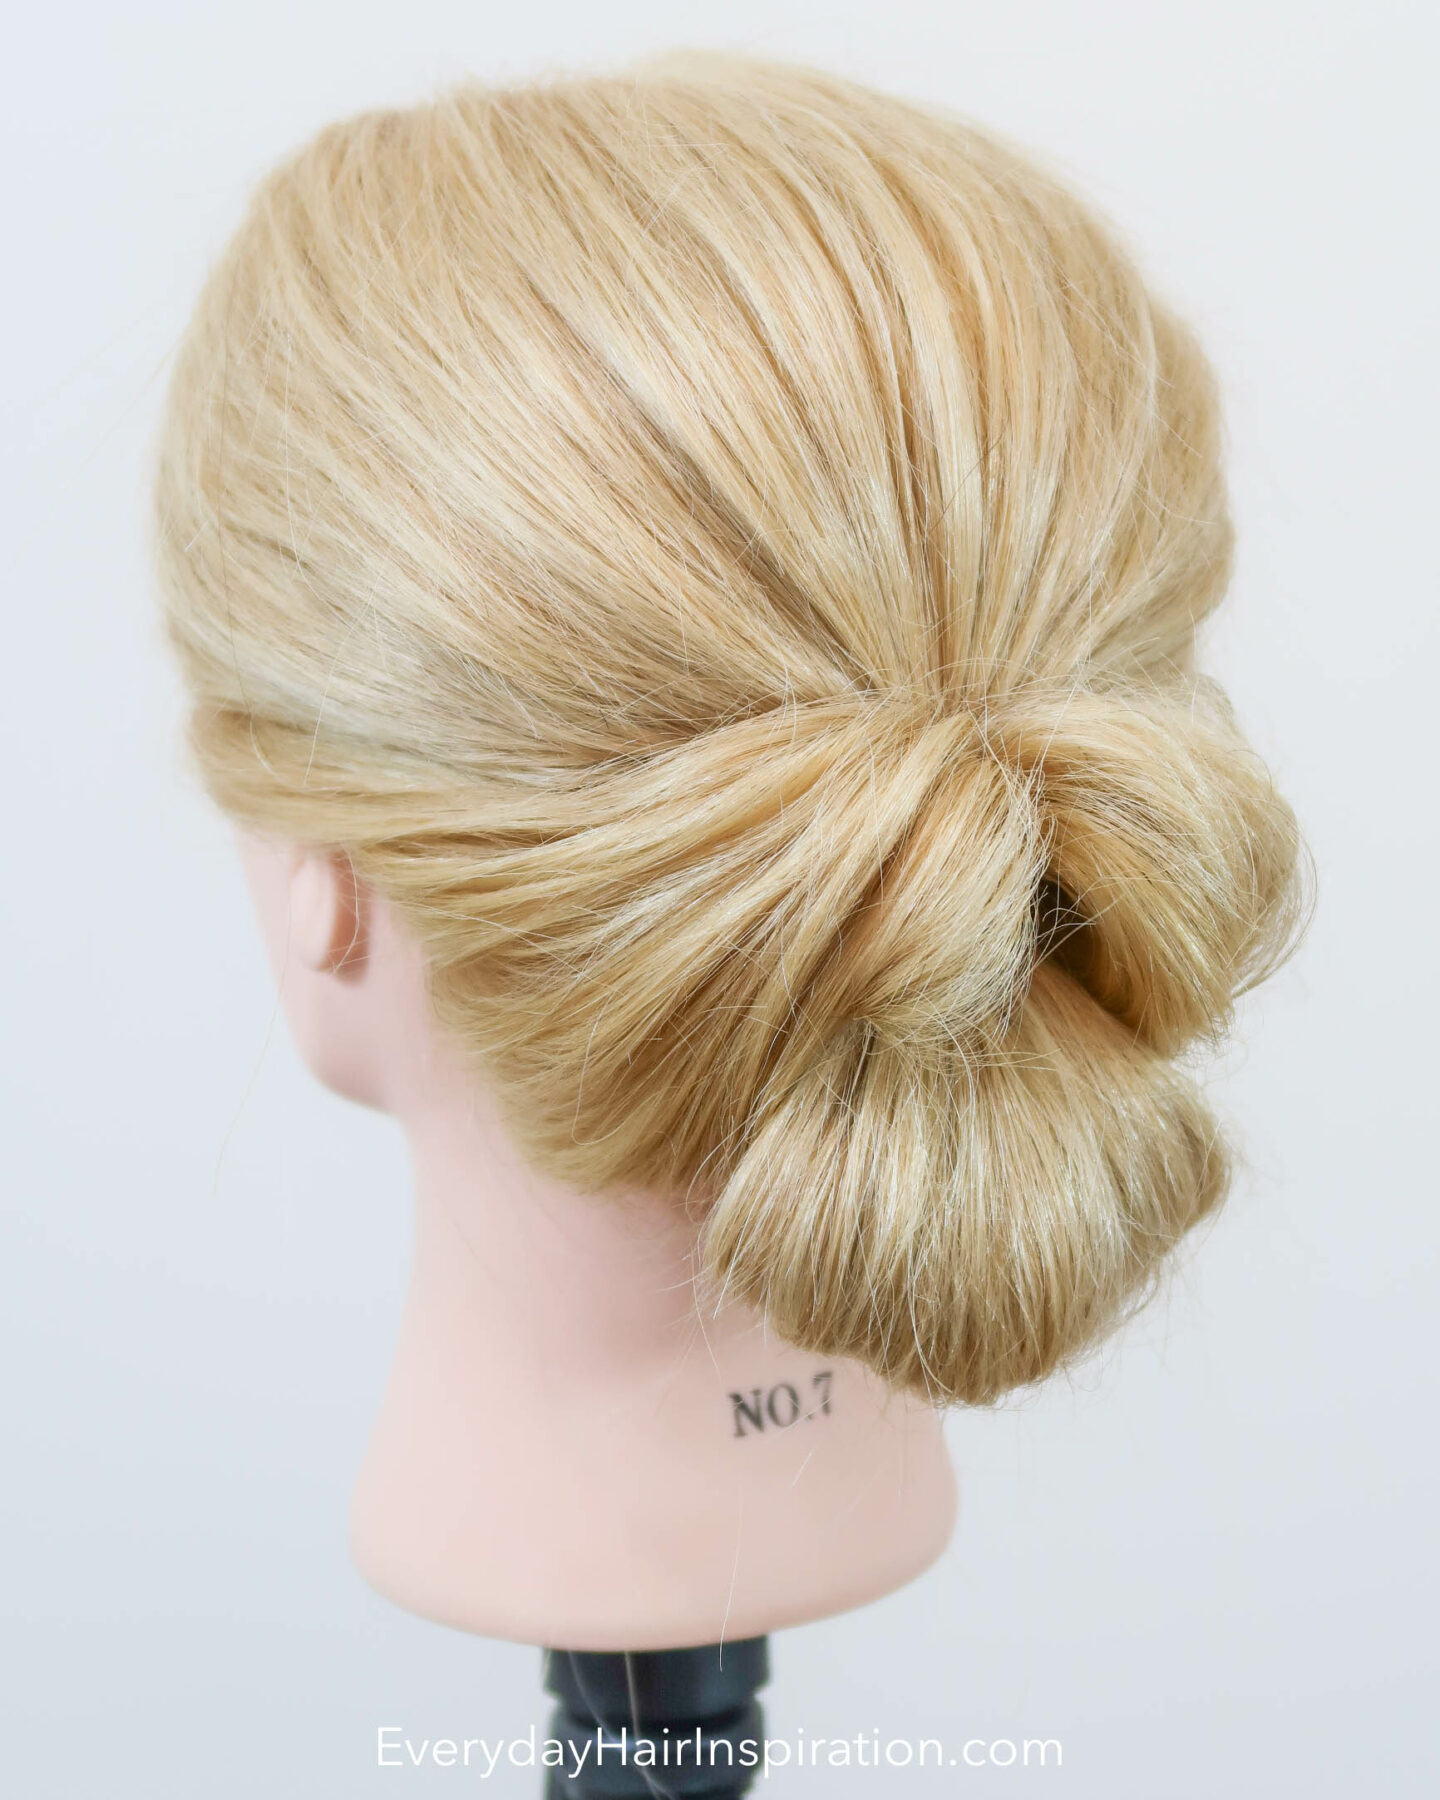 Hairdresser head with a twisted bridal updo, seen from an angle.